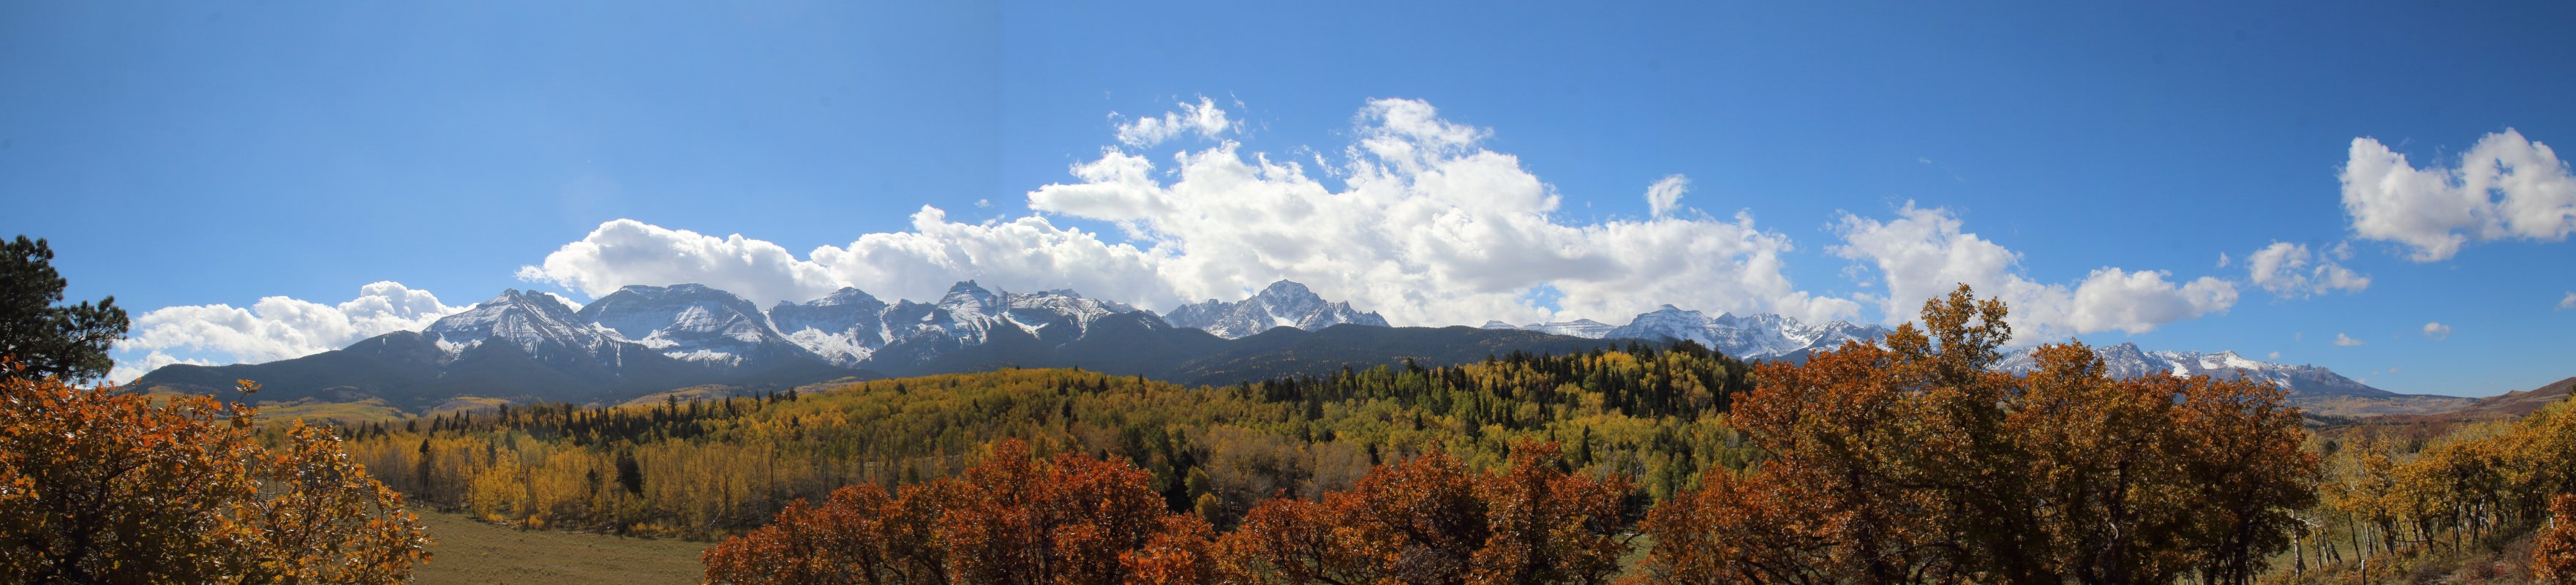 The best value in lodging near the Mount Sneffels Range